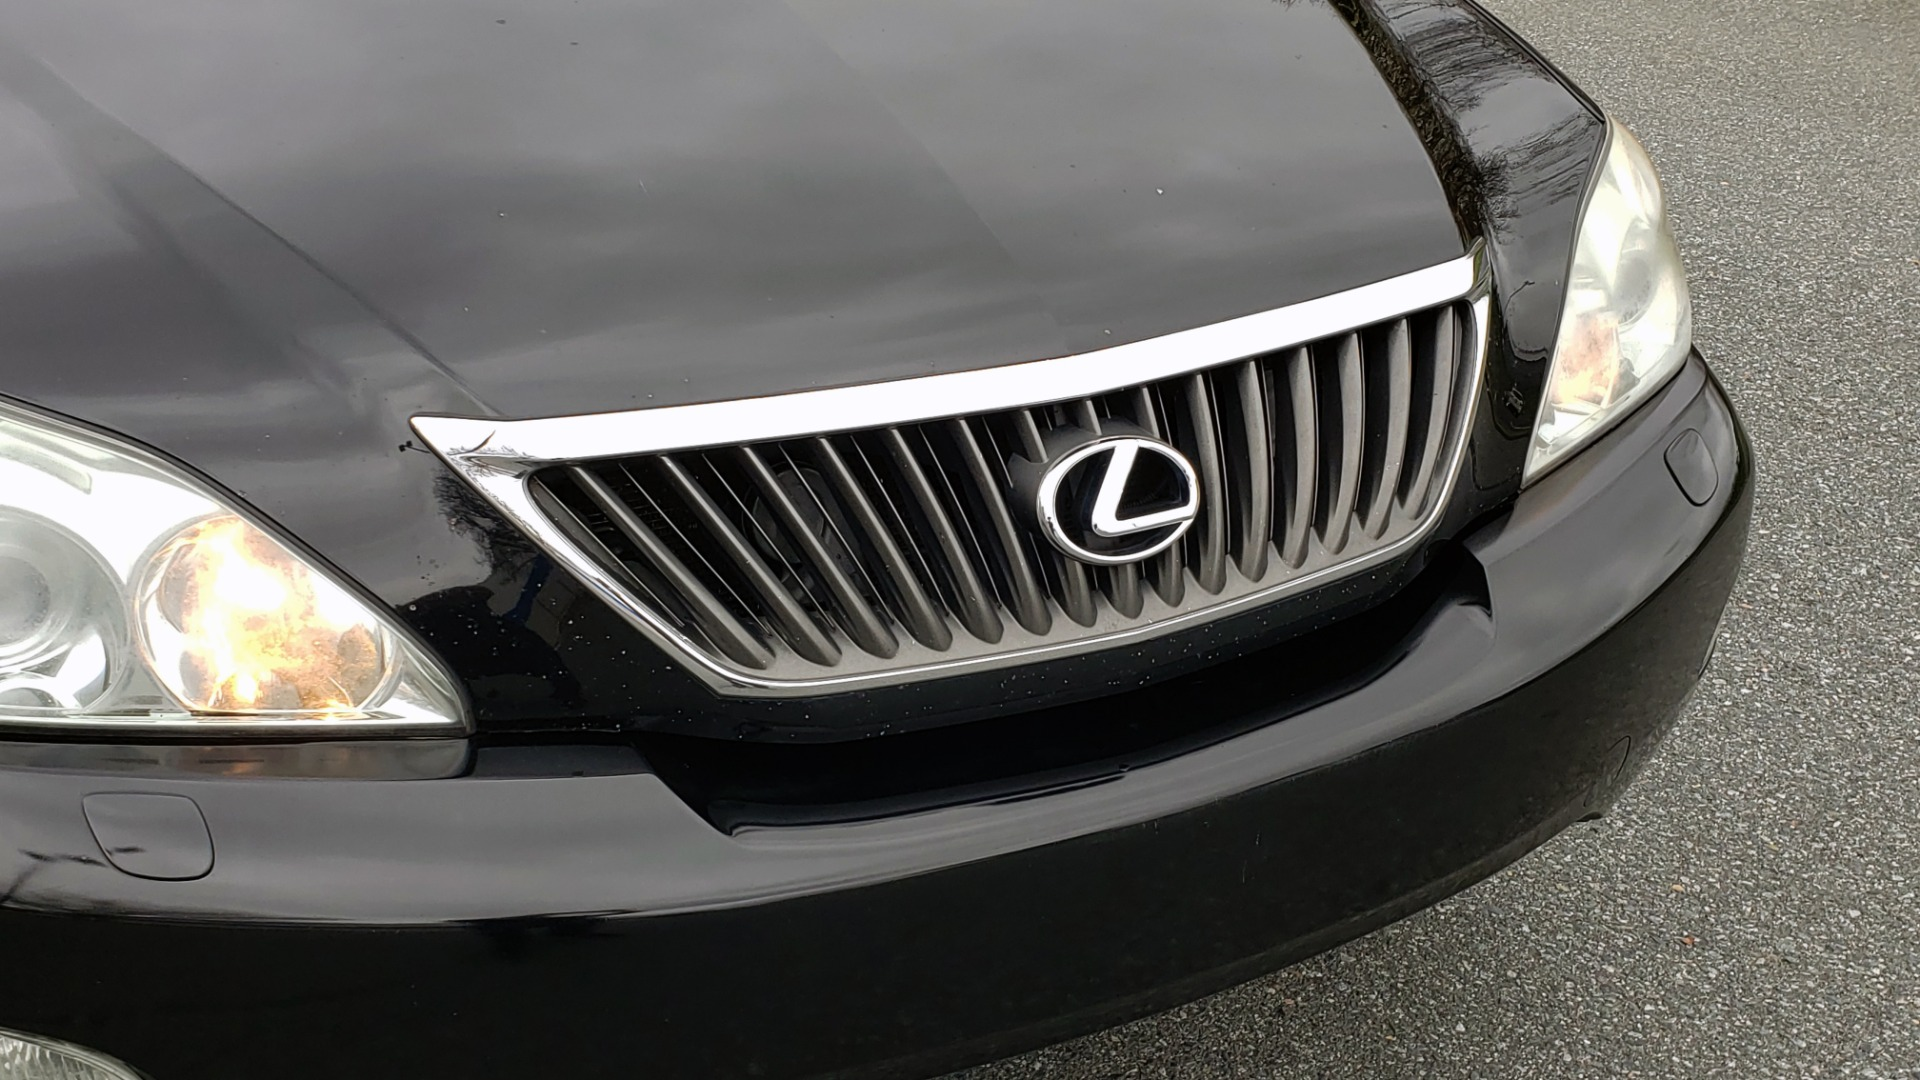 Used 2008 Lexus RX 350 LUXURY EDITION / NAV / SUNROOF / REARVIEW for sale Sold at Formula Imports in Charlotte NC 28227 25